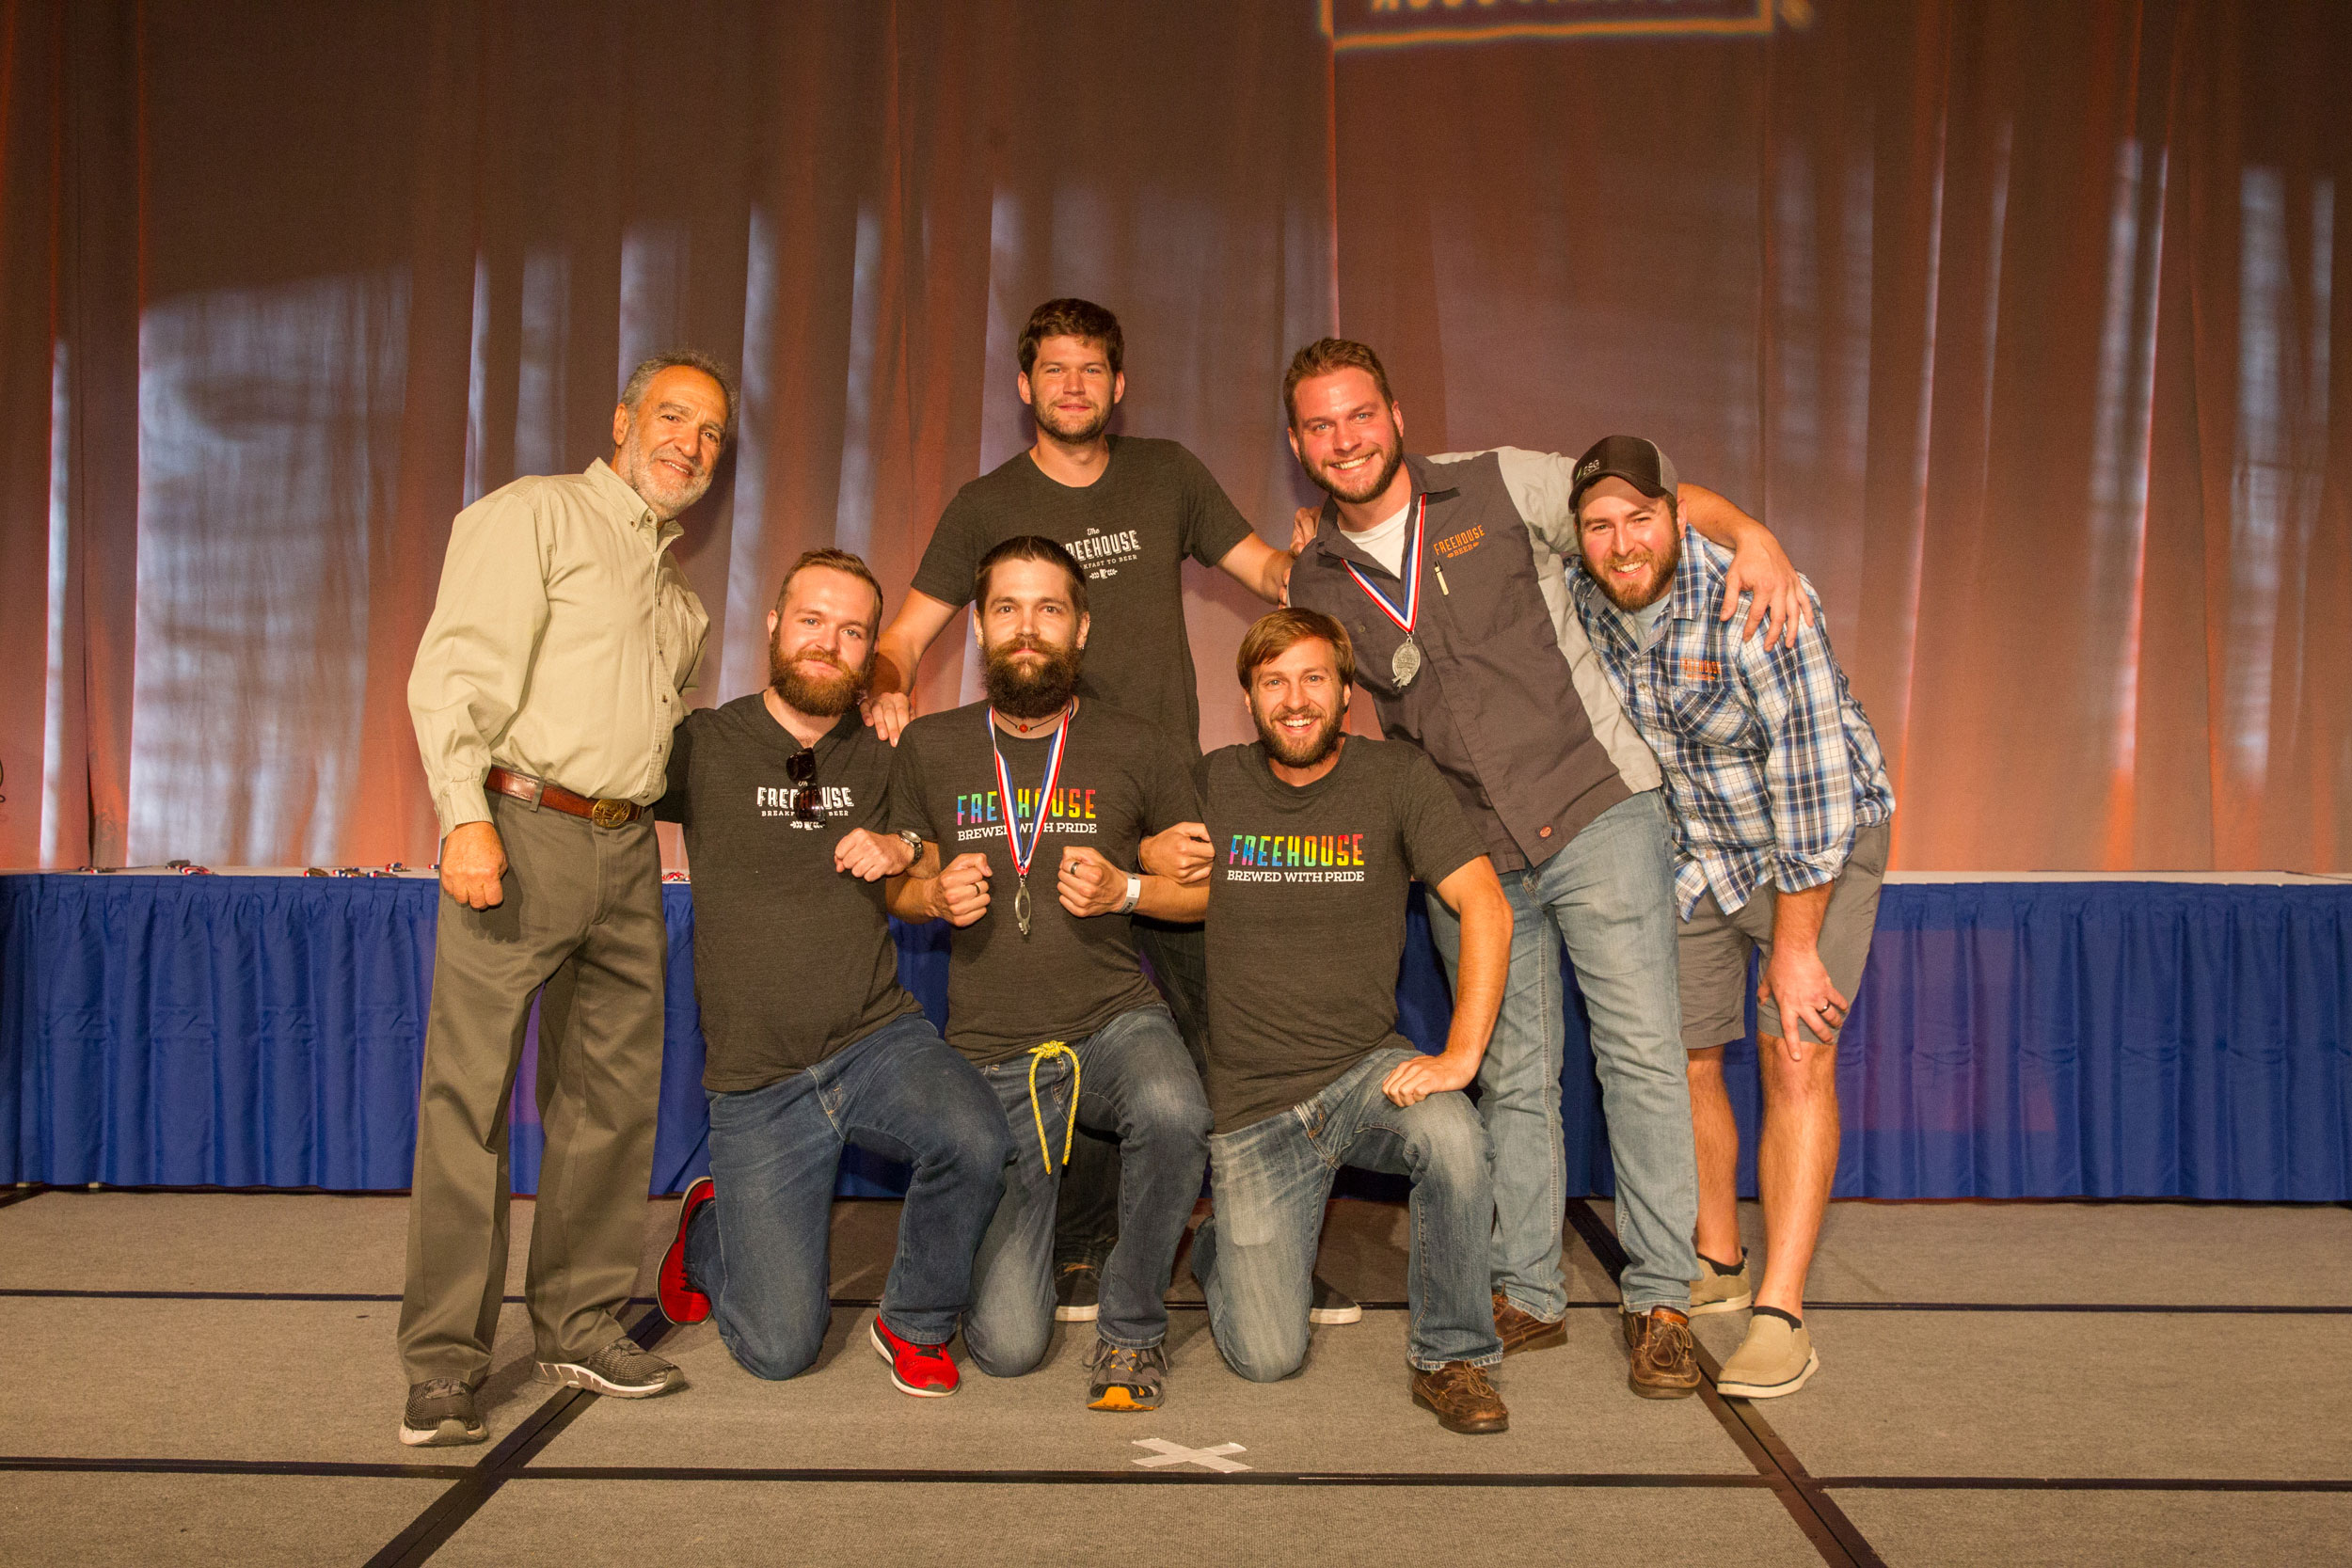 Matt Asay and The Freehouse brewing team accepted two medals at the 2017 GABF // Photo © 2017 Jason E. Kaplan